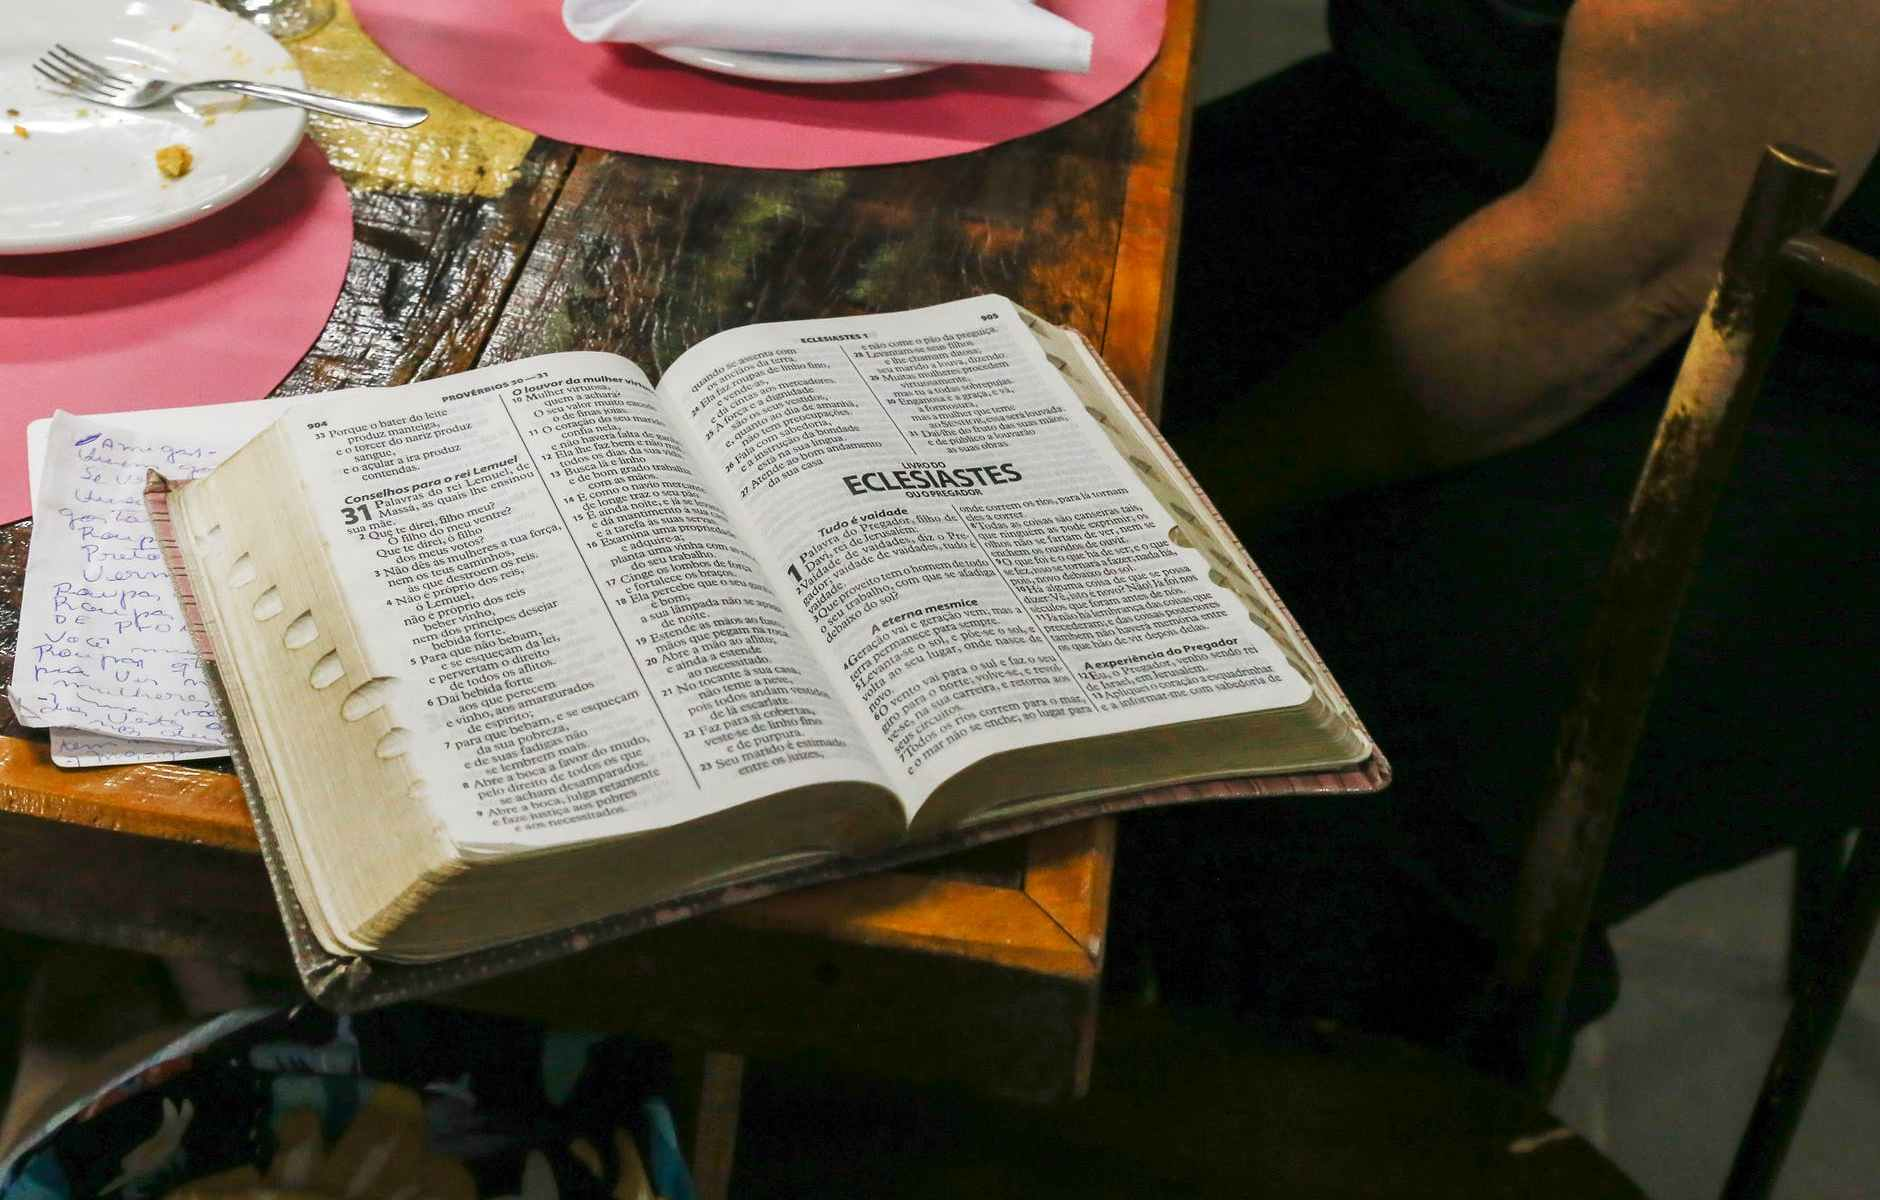 photo of opened bible book on brown table